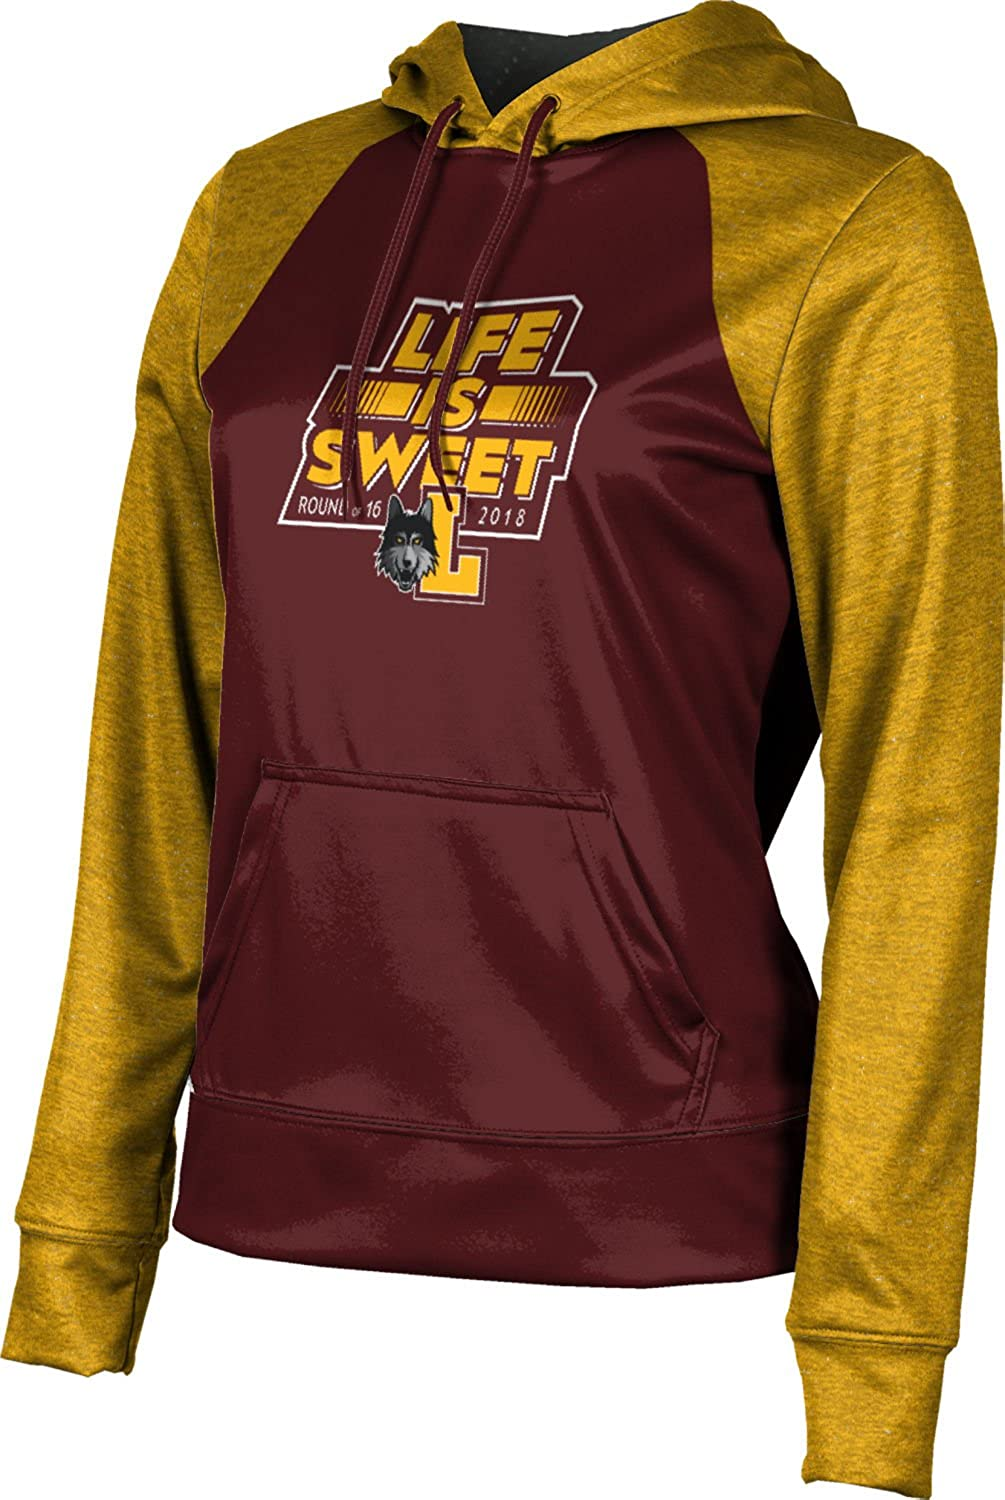 Raglan School Spirit Sweatshirt Loyola University Chicago March Basketball Girls Pullover Hoodie